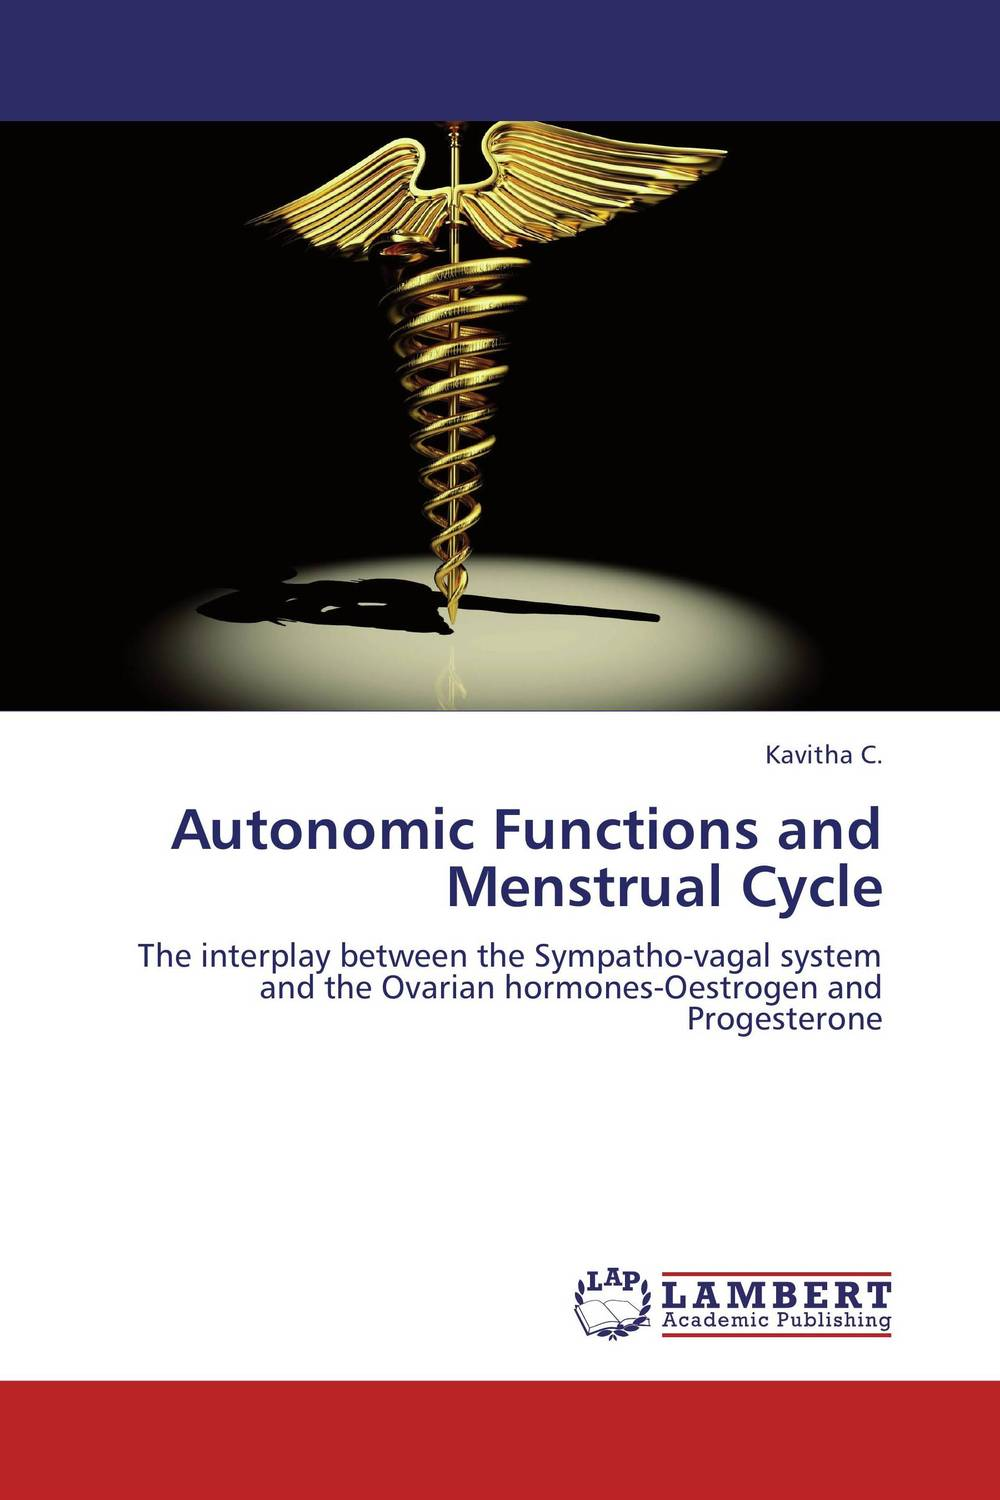 Autonomic Functions and Menstrual Cycle vishnu gupta modulation of ovarian functions and fertility response using insulin